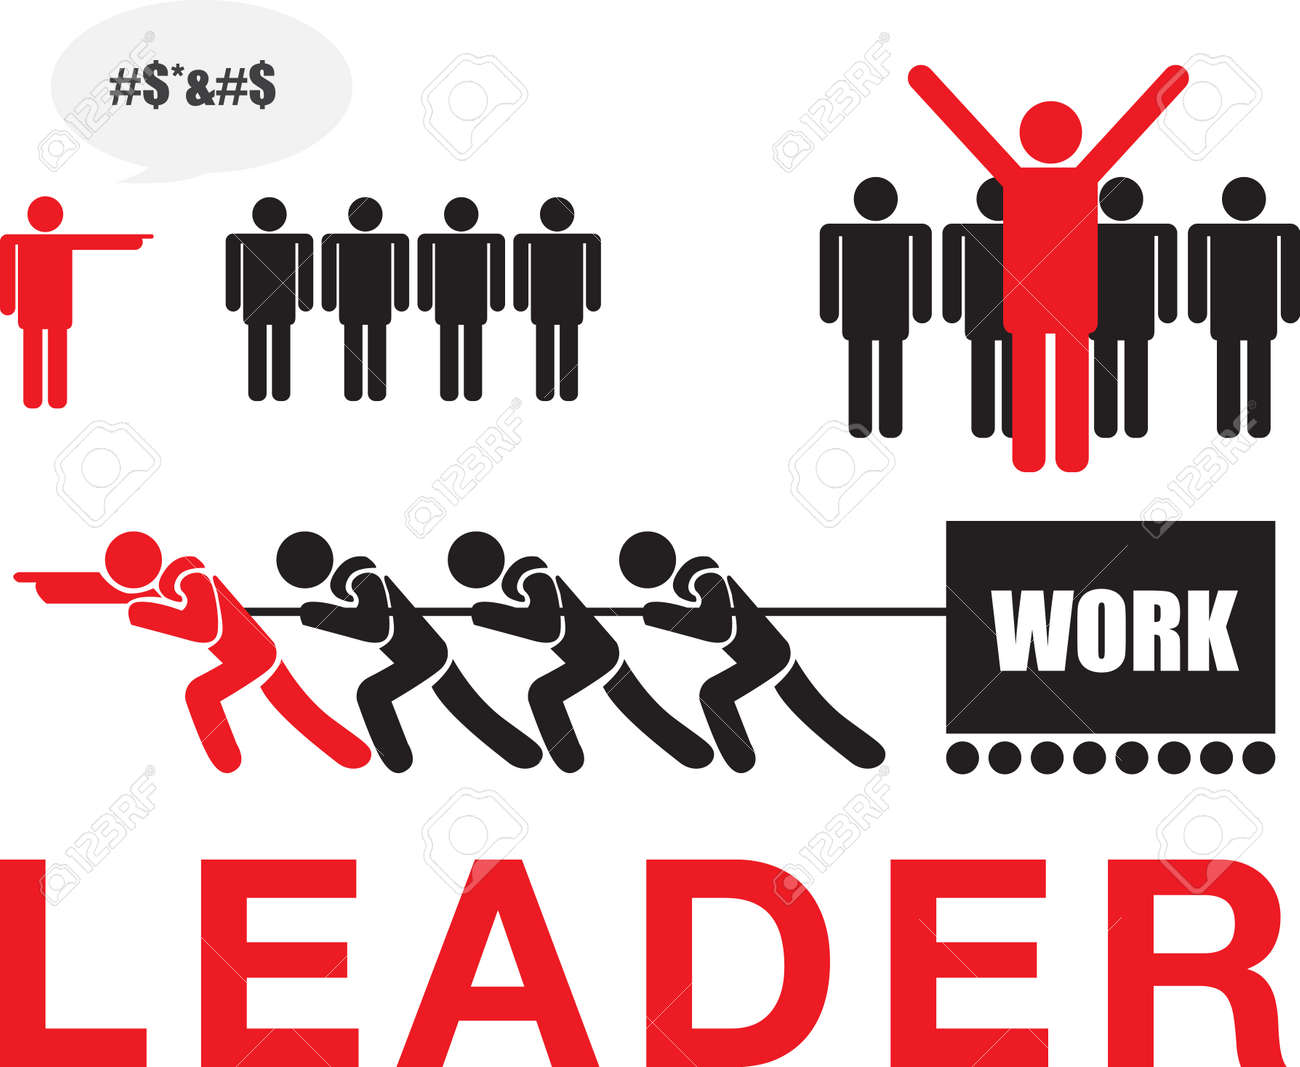 Vector of leader vs boss, leadership and business concept